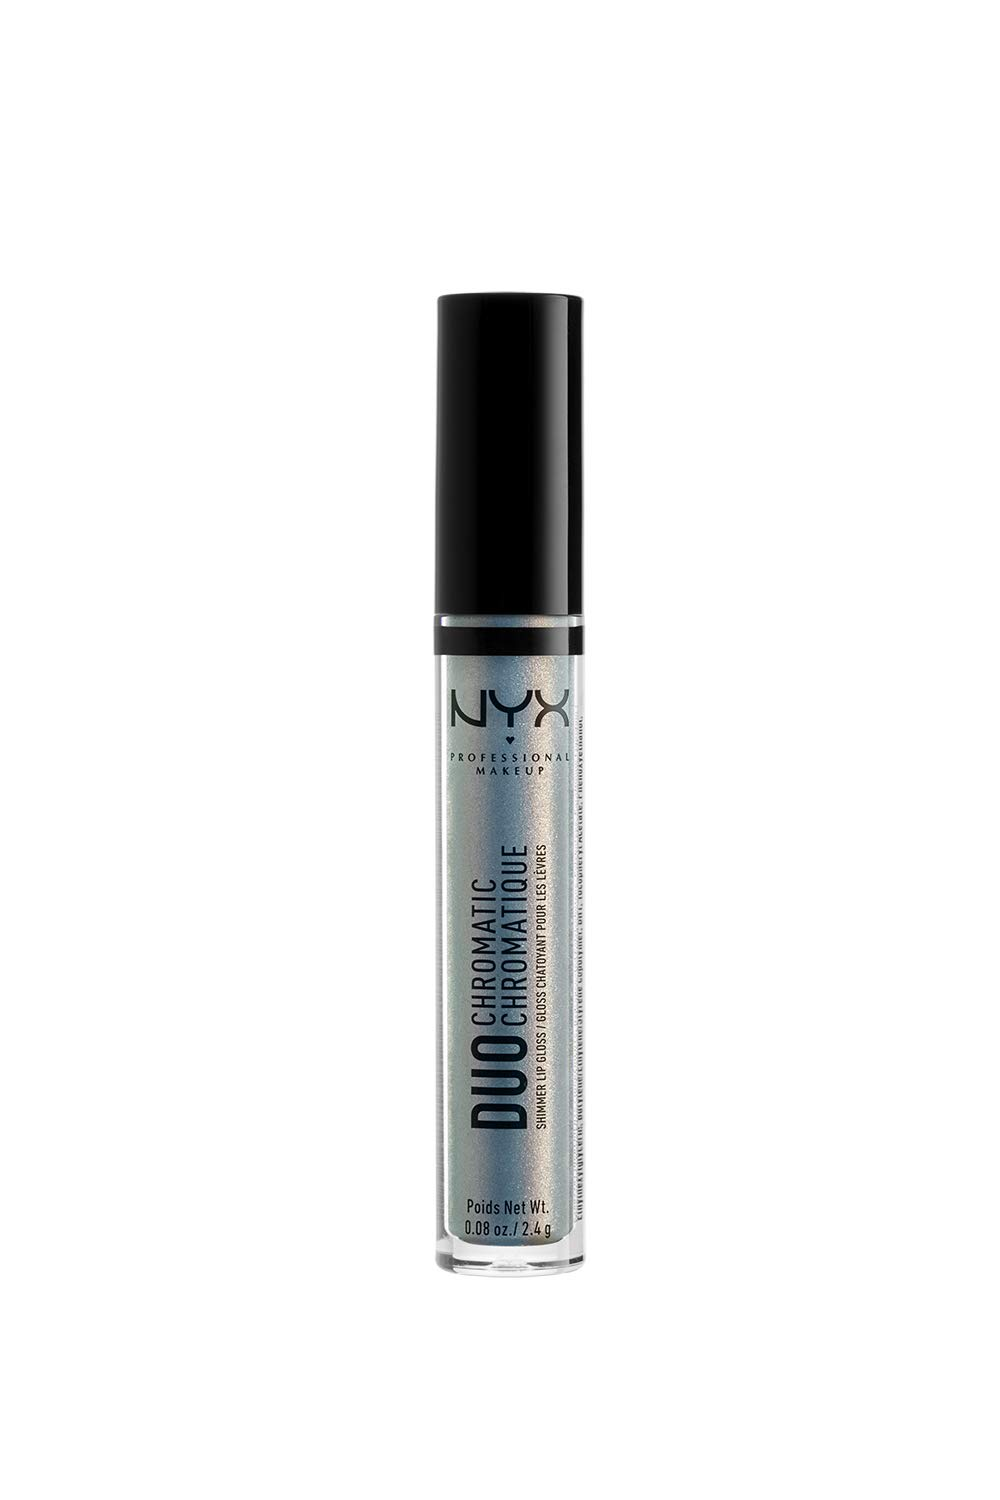 NYX PROFESSIONAL MAKEUP Duo Chromatic Lip Gloss, Day Club, 0.08 Ounce